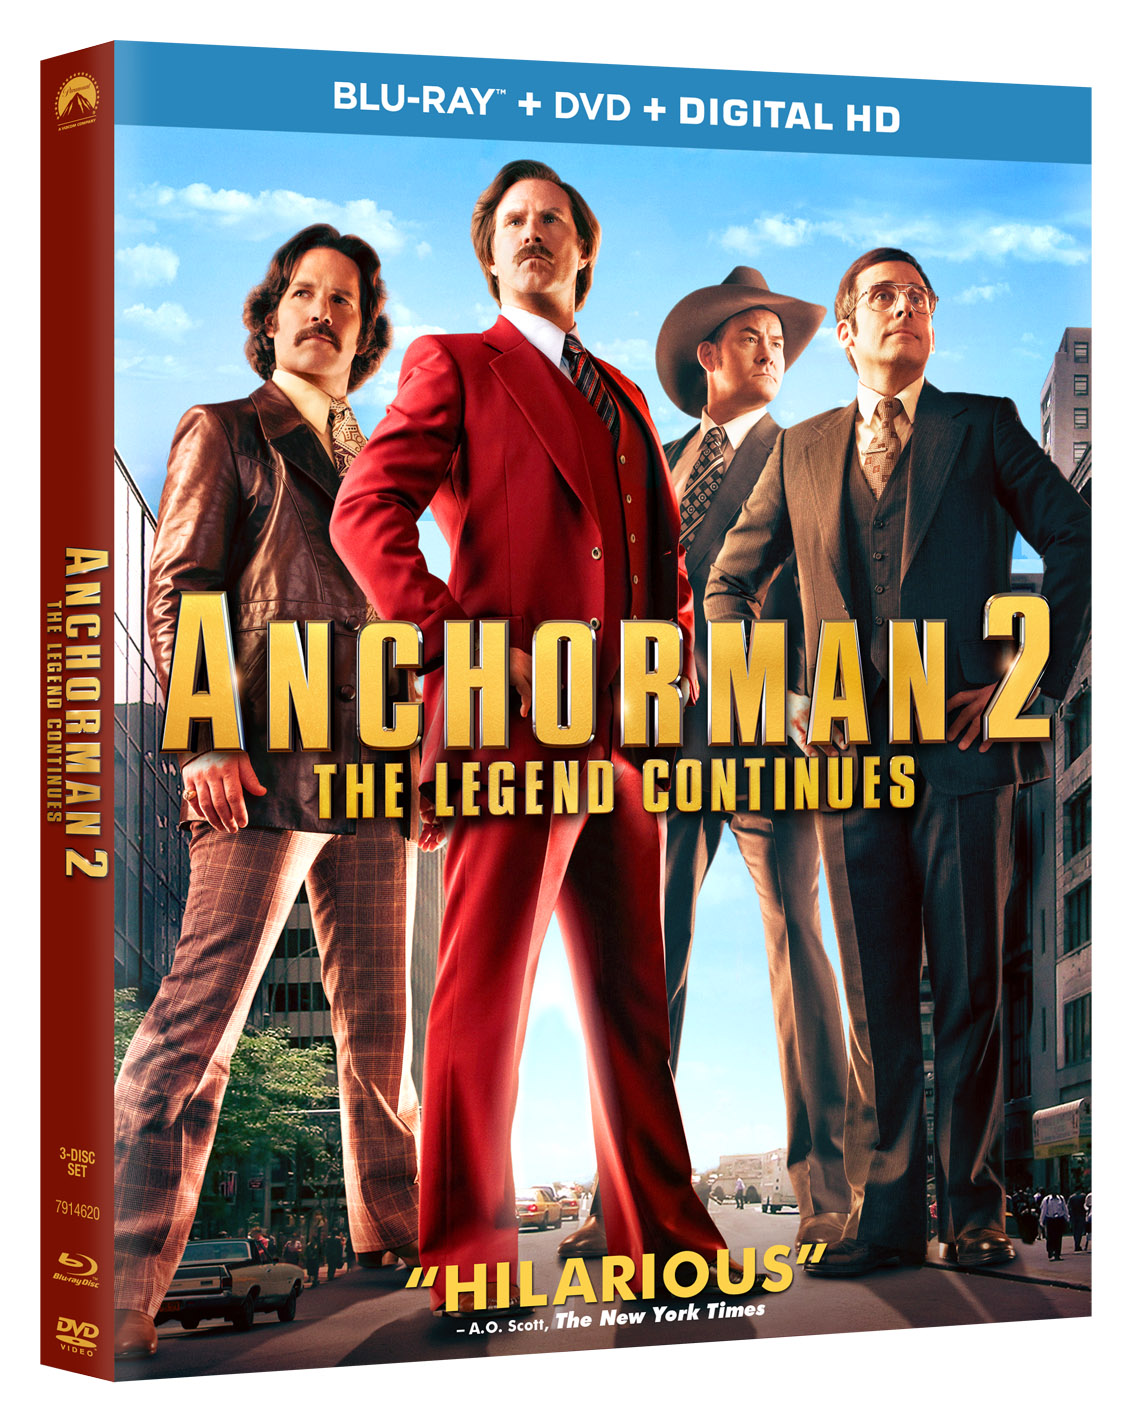 Anchorman 2 Blu-ray Review